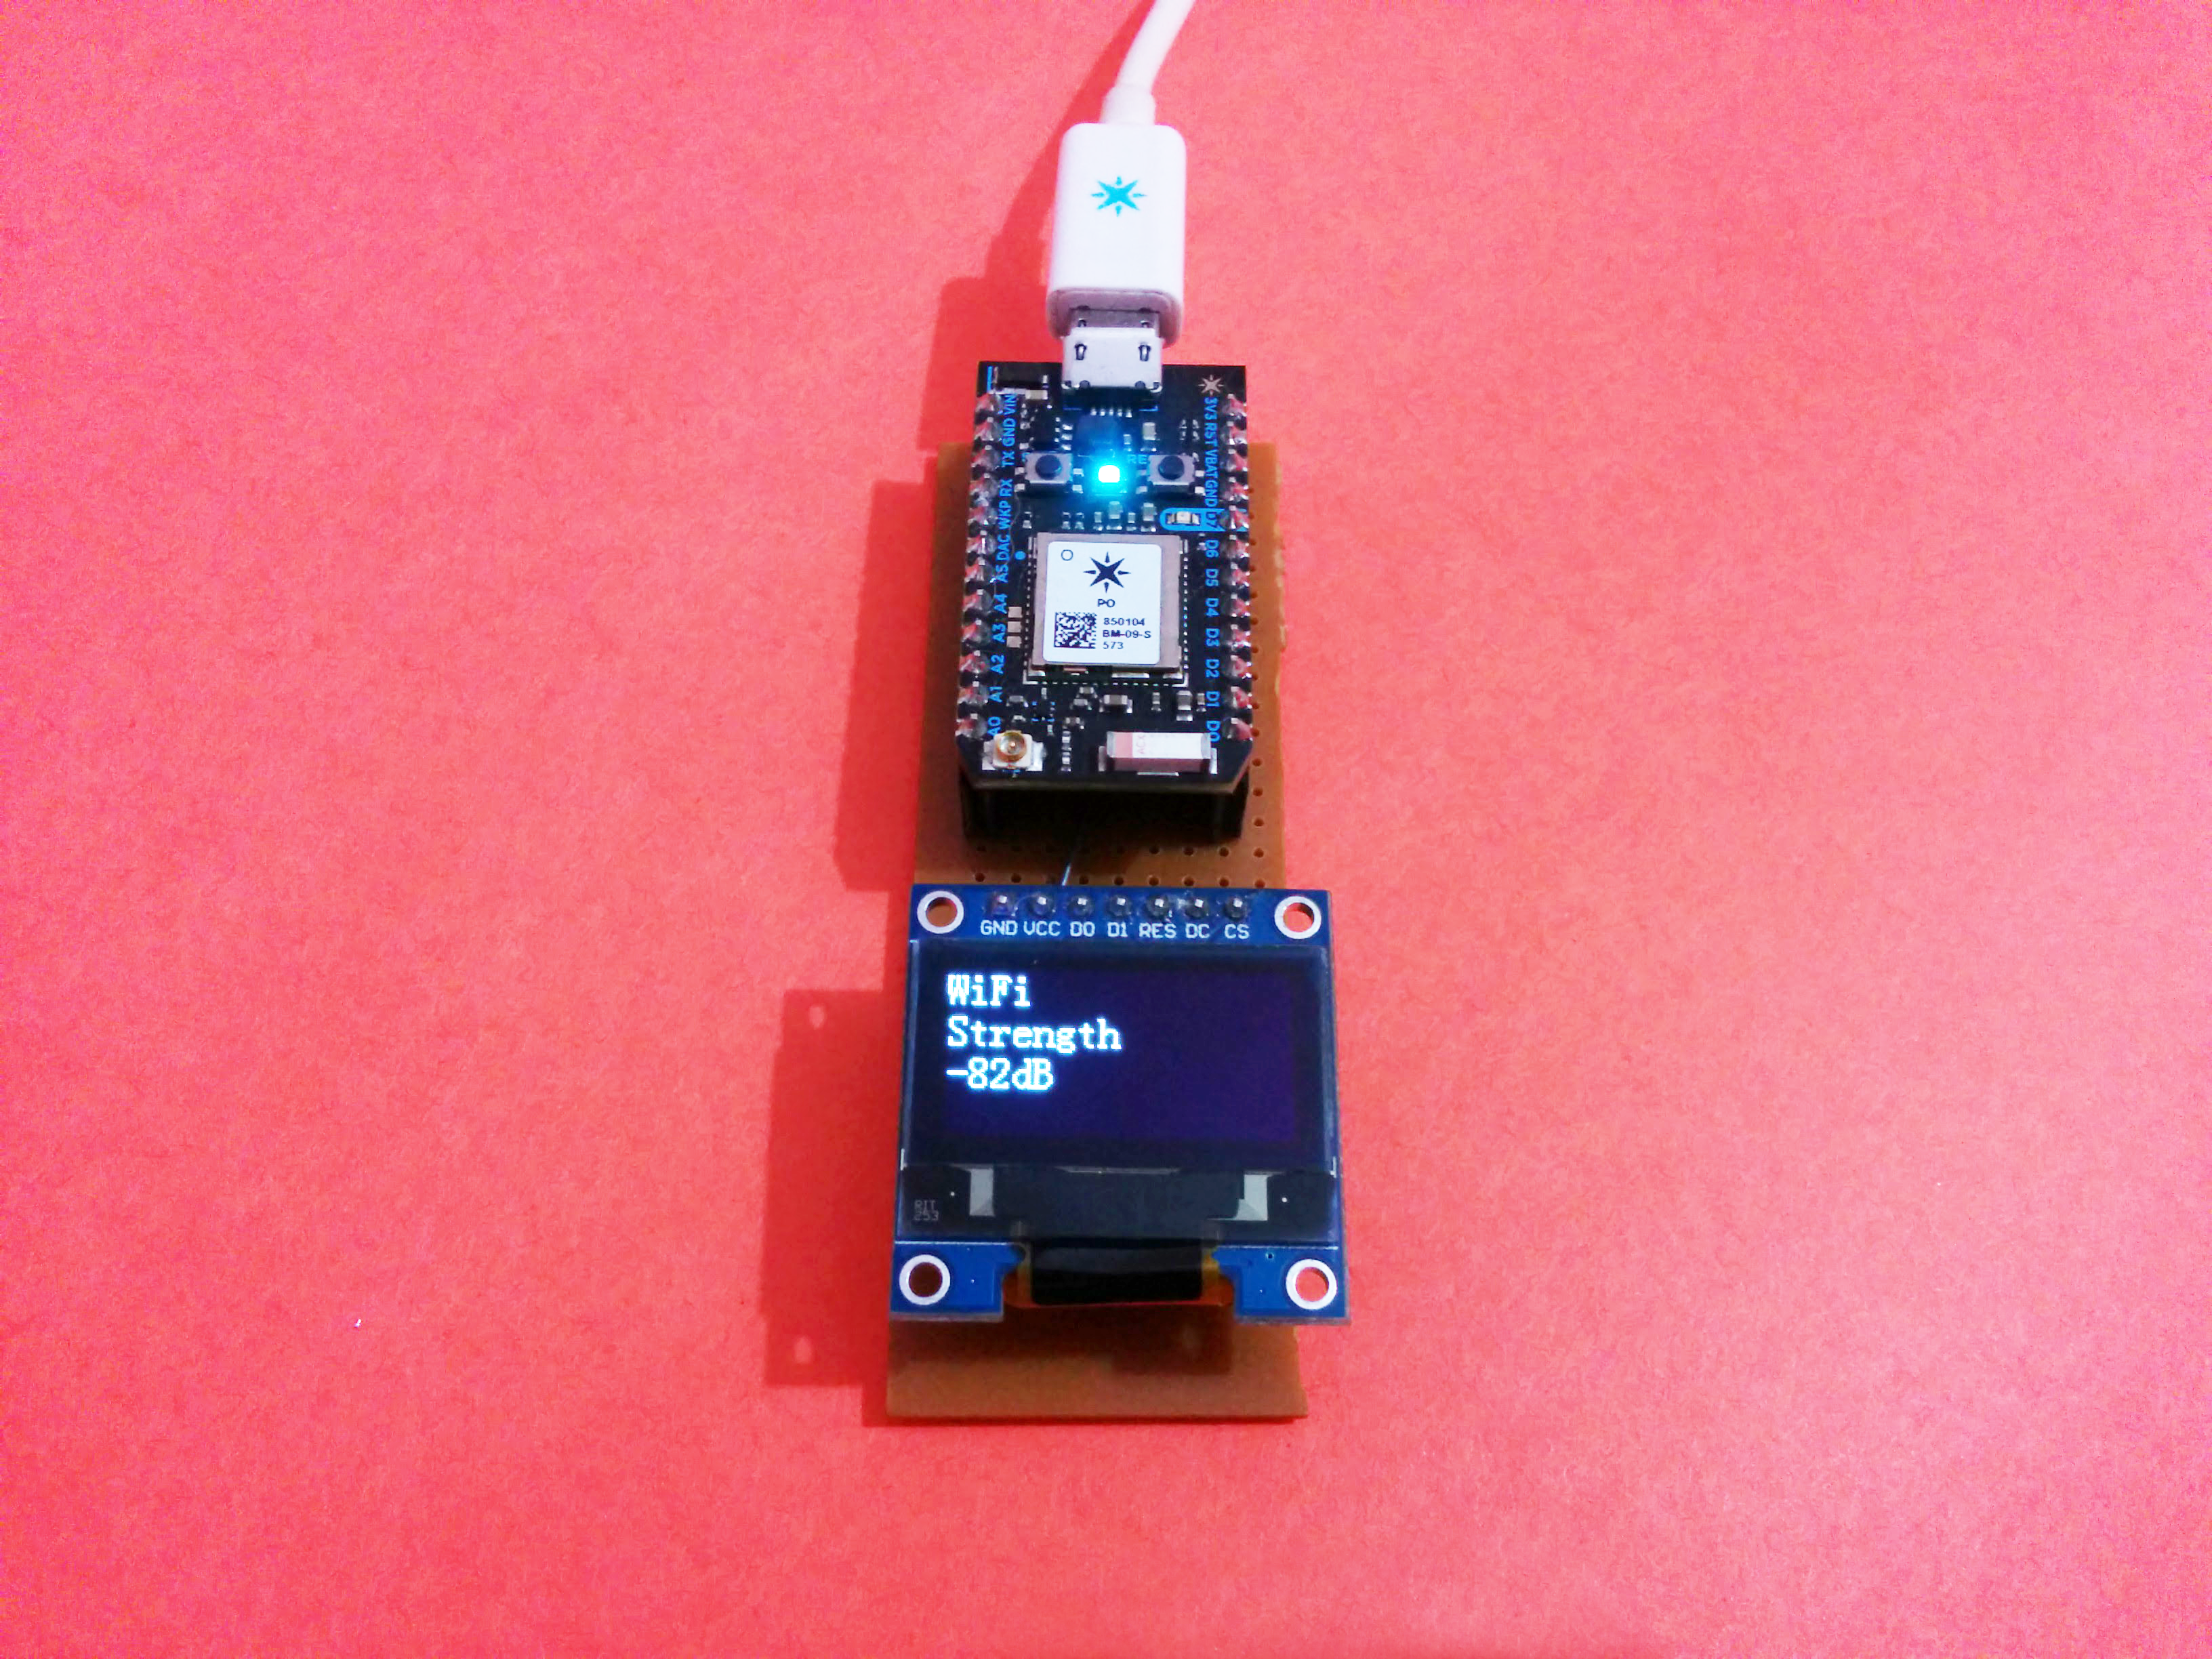 Picture of Measure Your WiFi Signal Strength Using Particle Photon